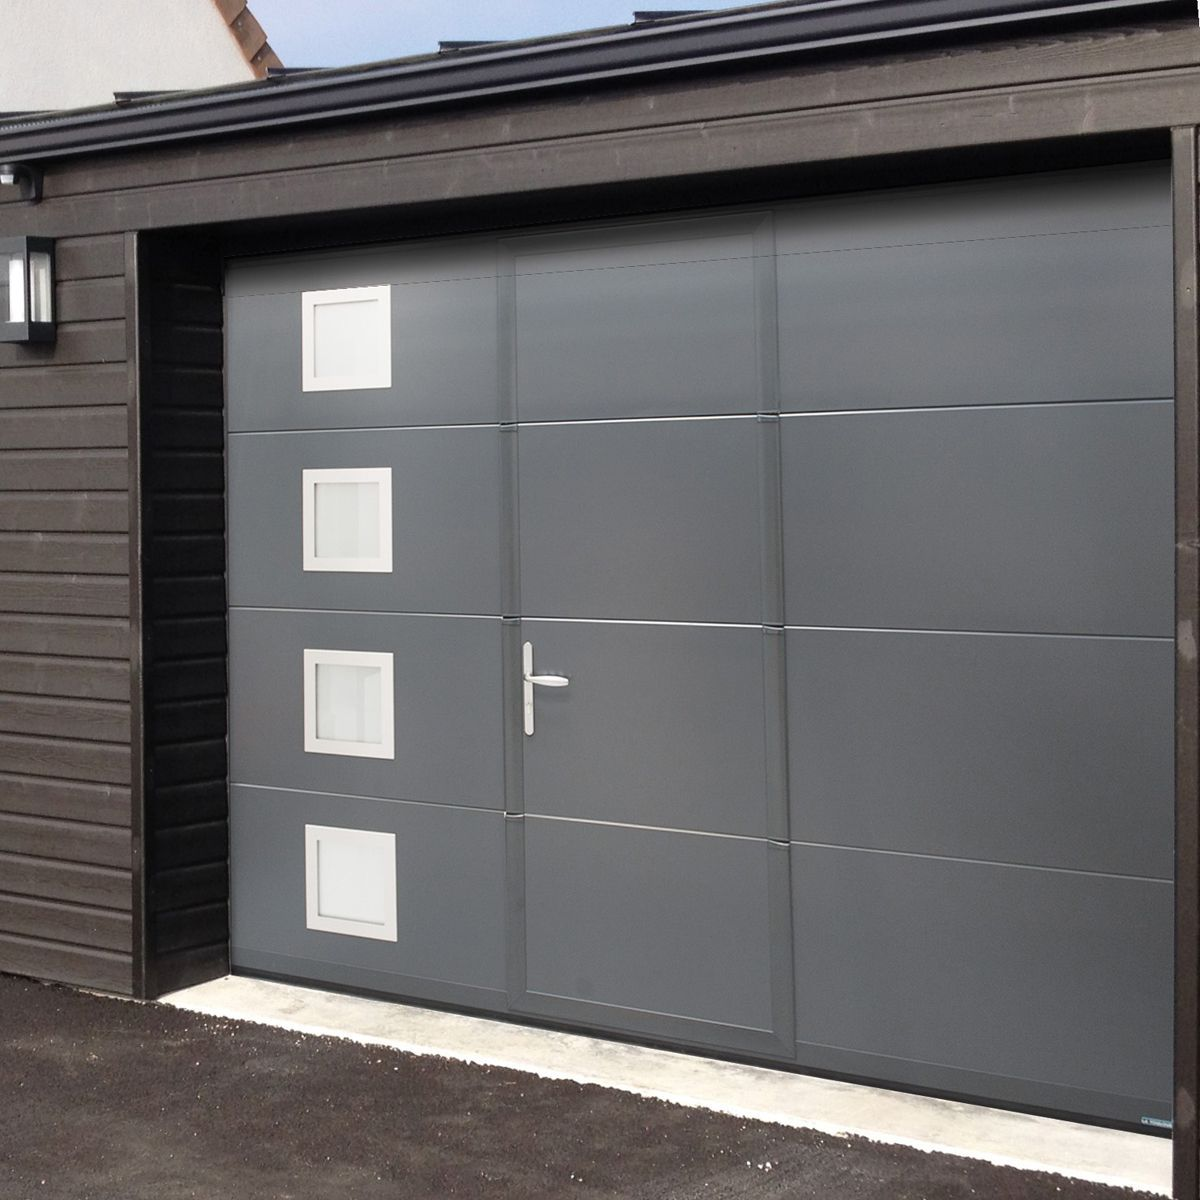 Portes de garage fabriqu es en france sur mesure isoferm for Porte de garage avis